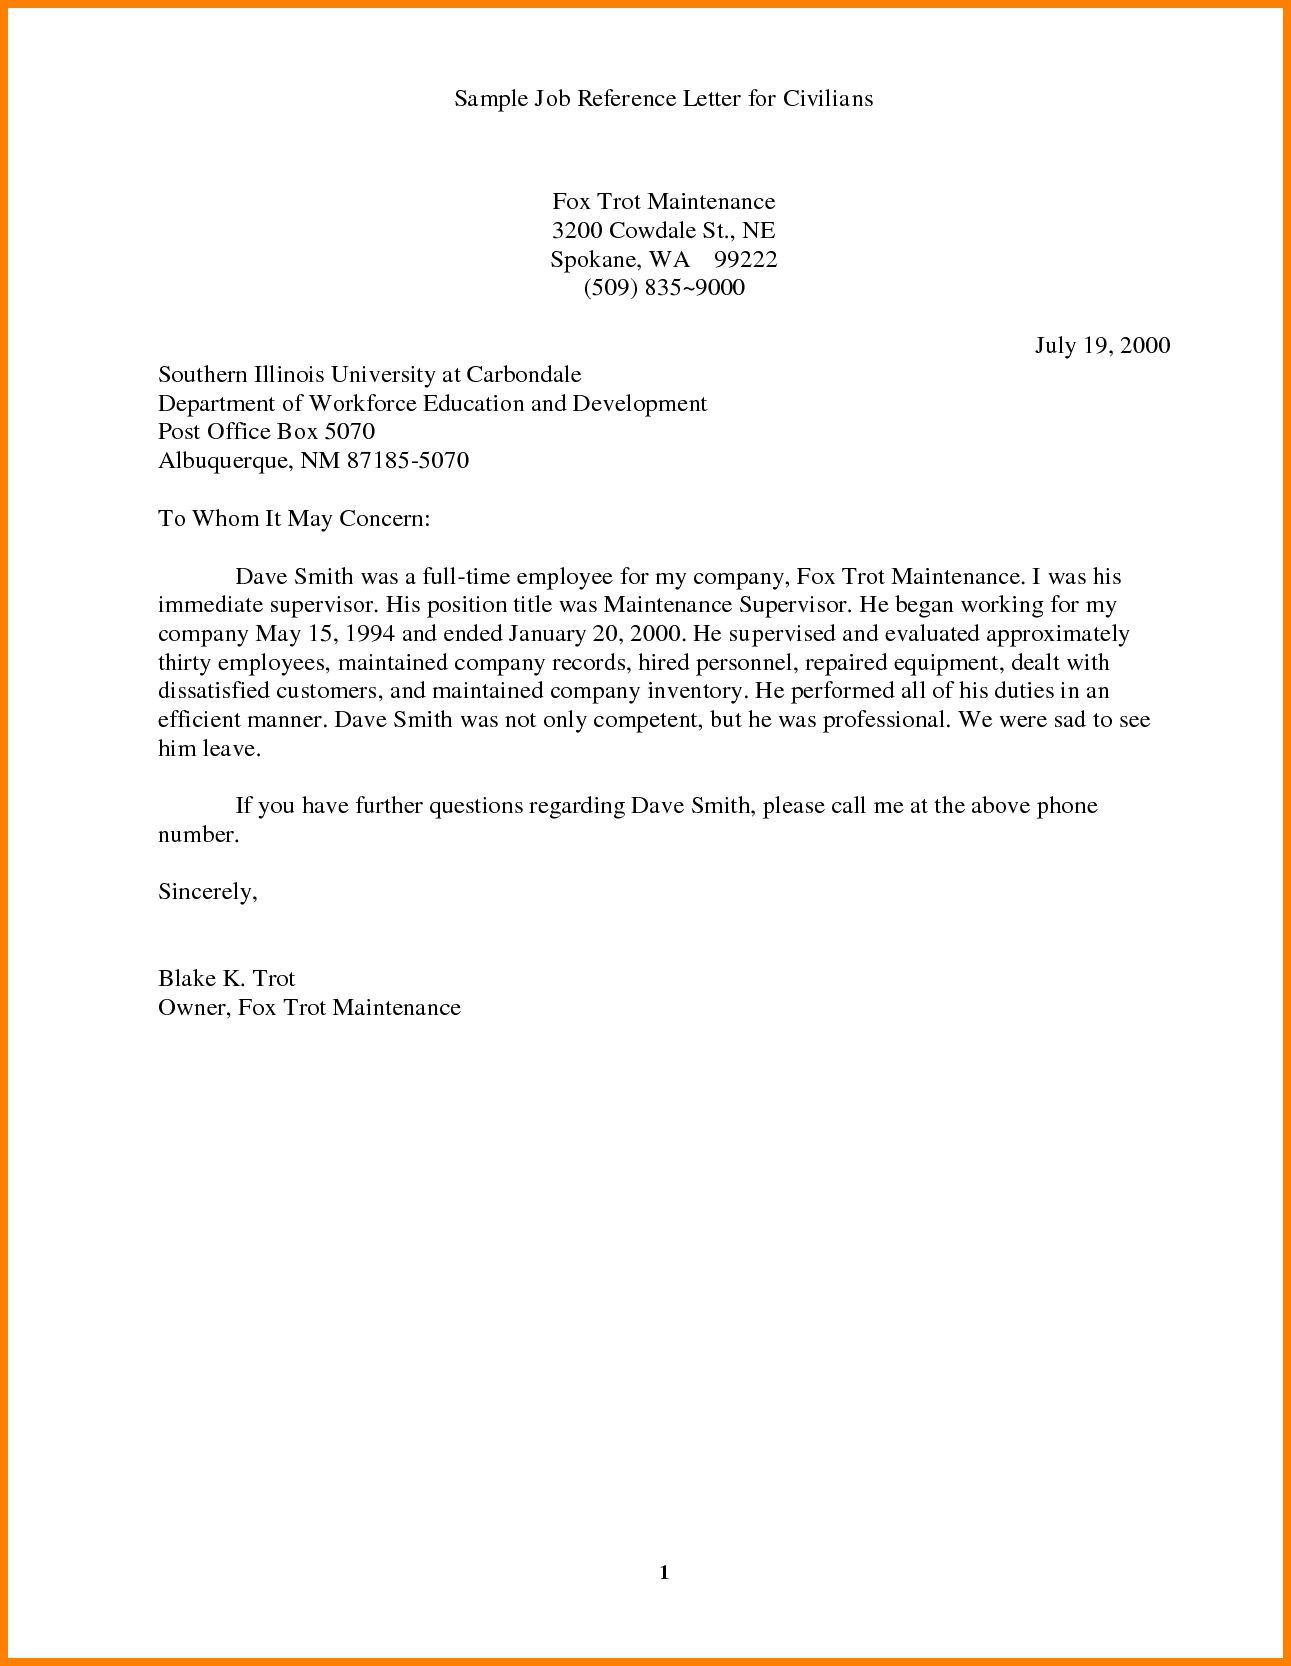 005 Fantastic Professional Reference Letter Template Word Image Full